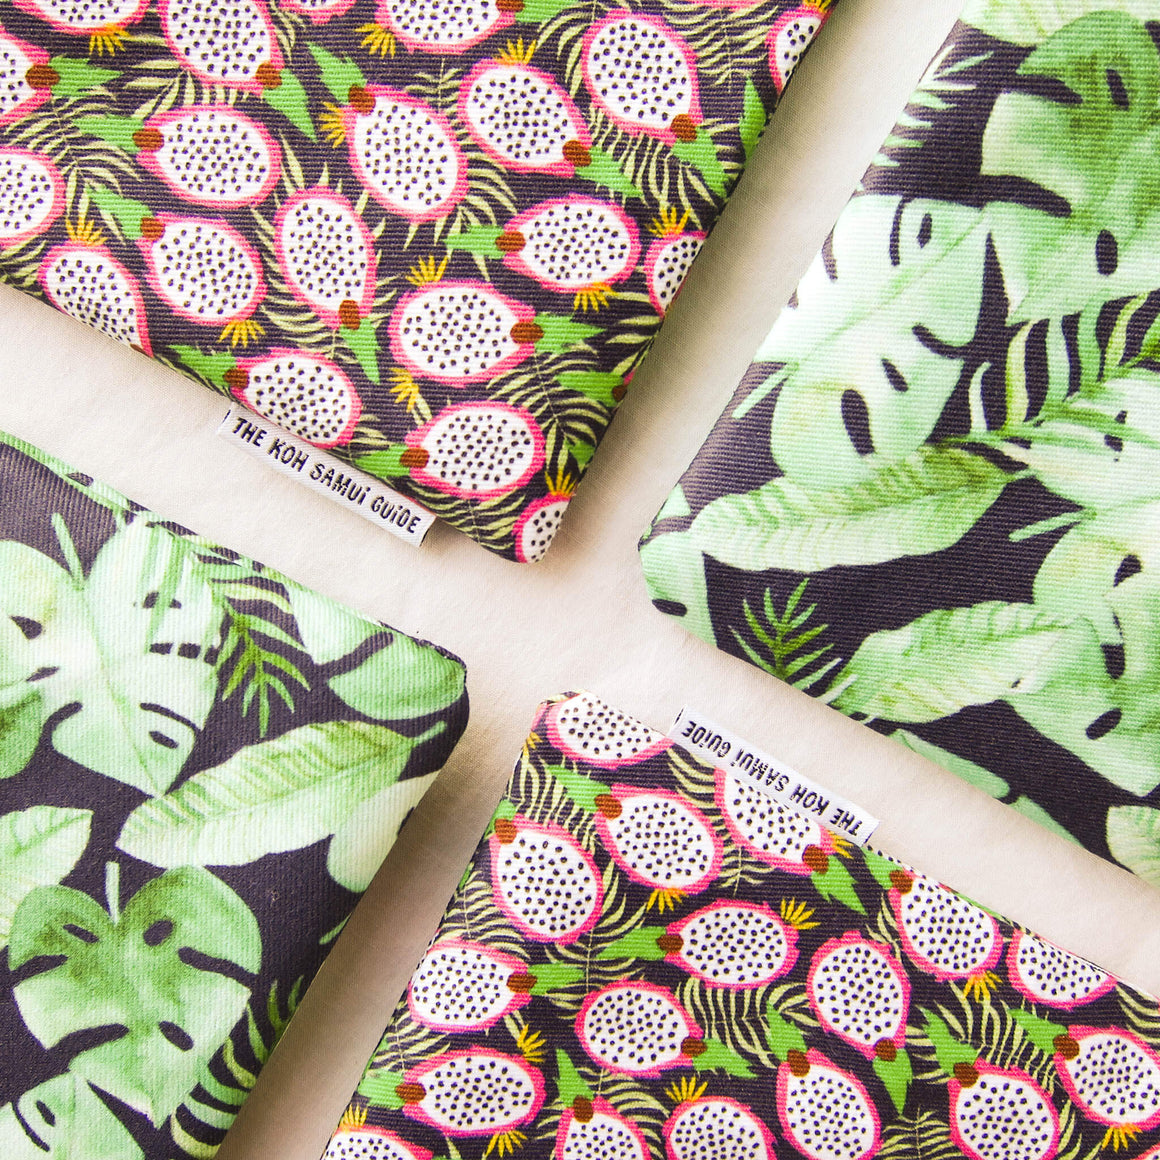 Doctor Pouchy: Tropical-Style Zipper Pouches for COVID Relief in Koh Samui, Thailand